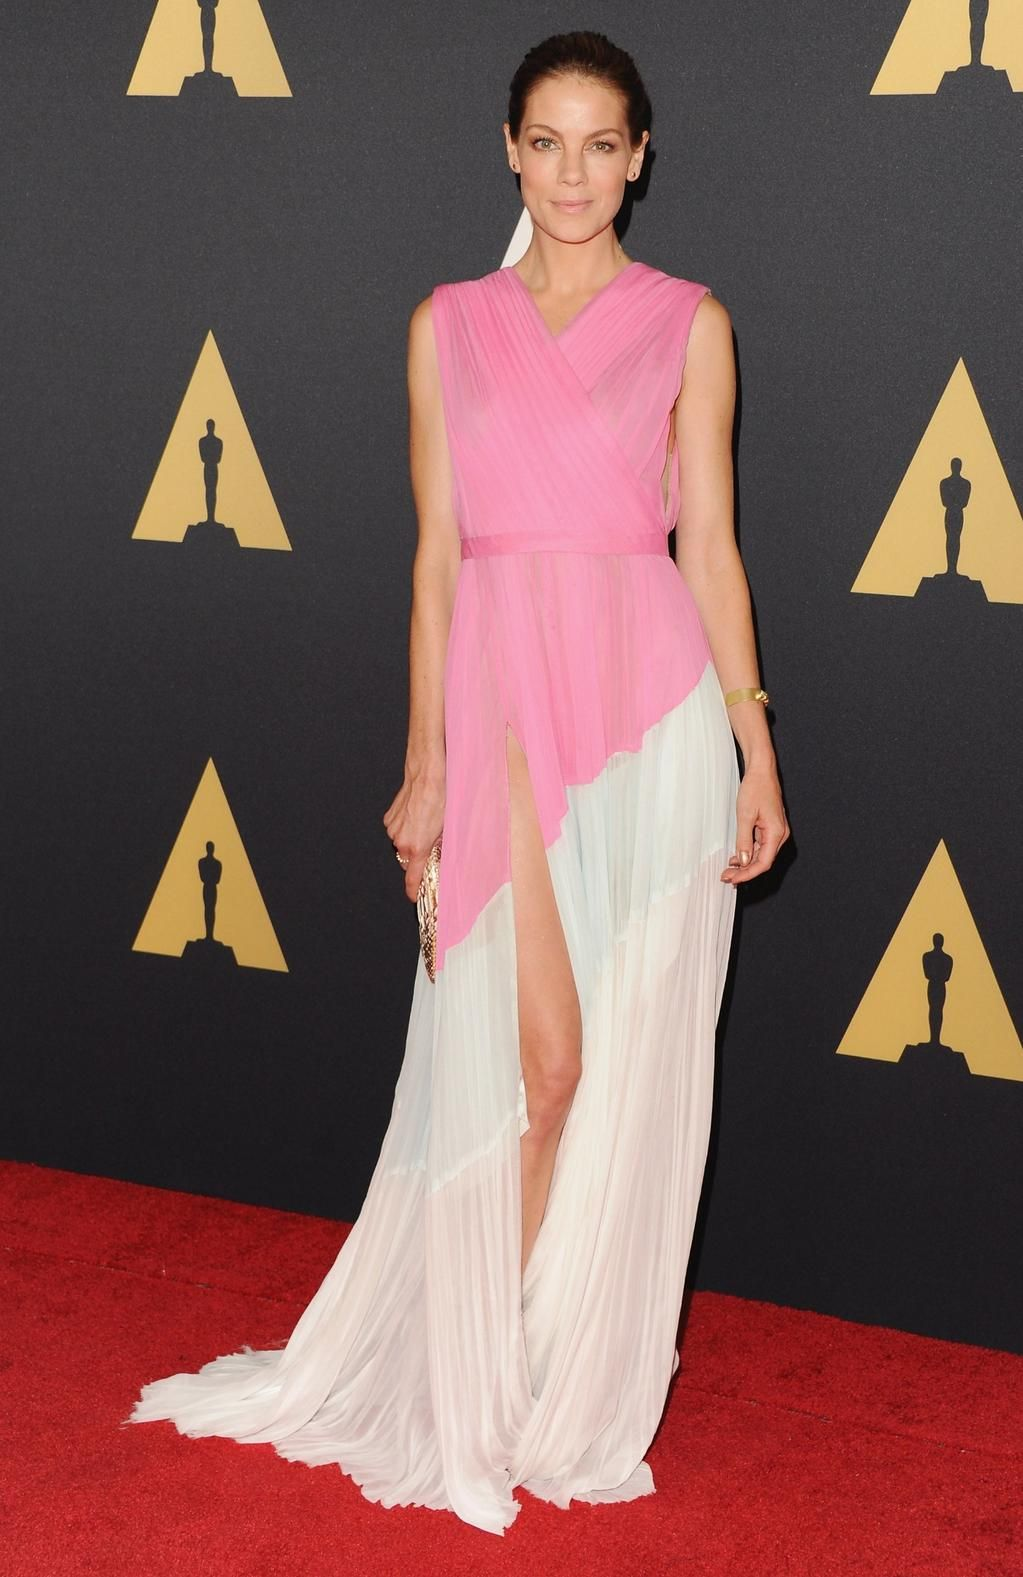 Michelle Monaghan in J. Mendel | Celebrities | Pinterest